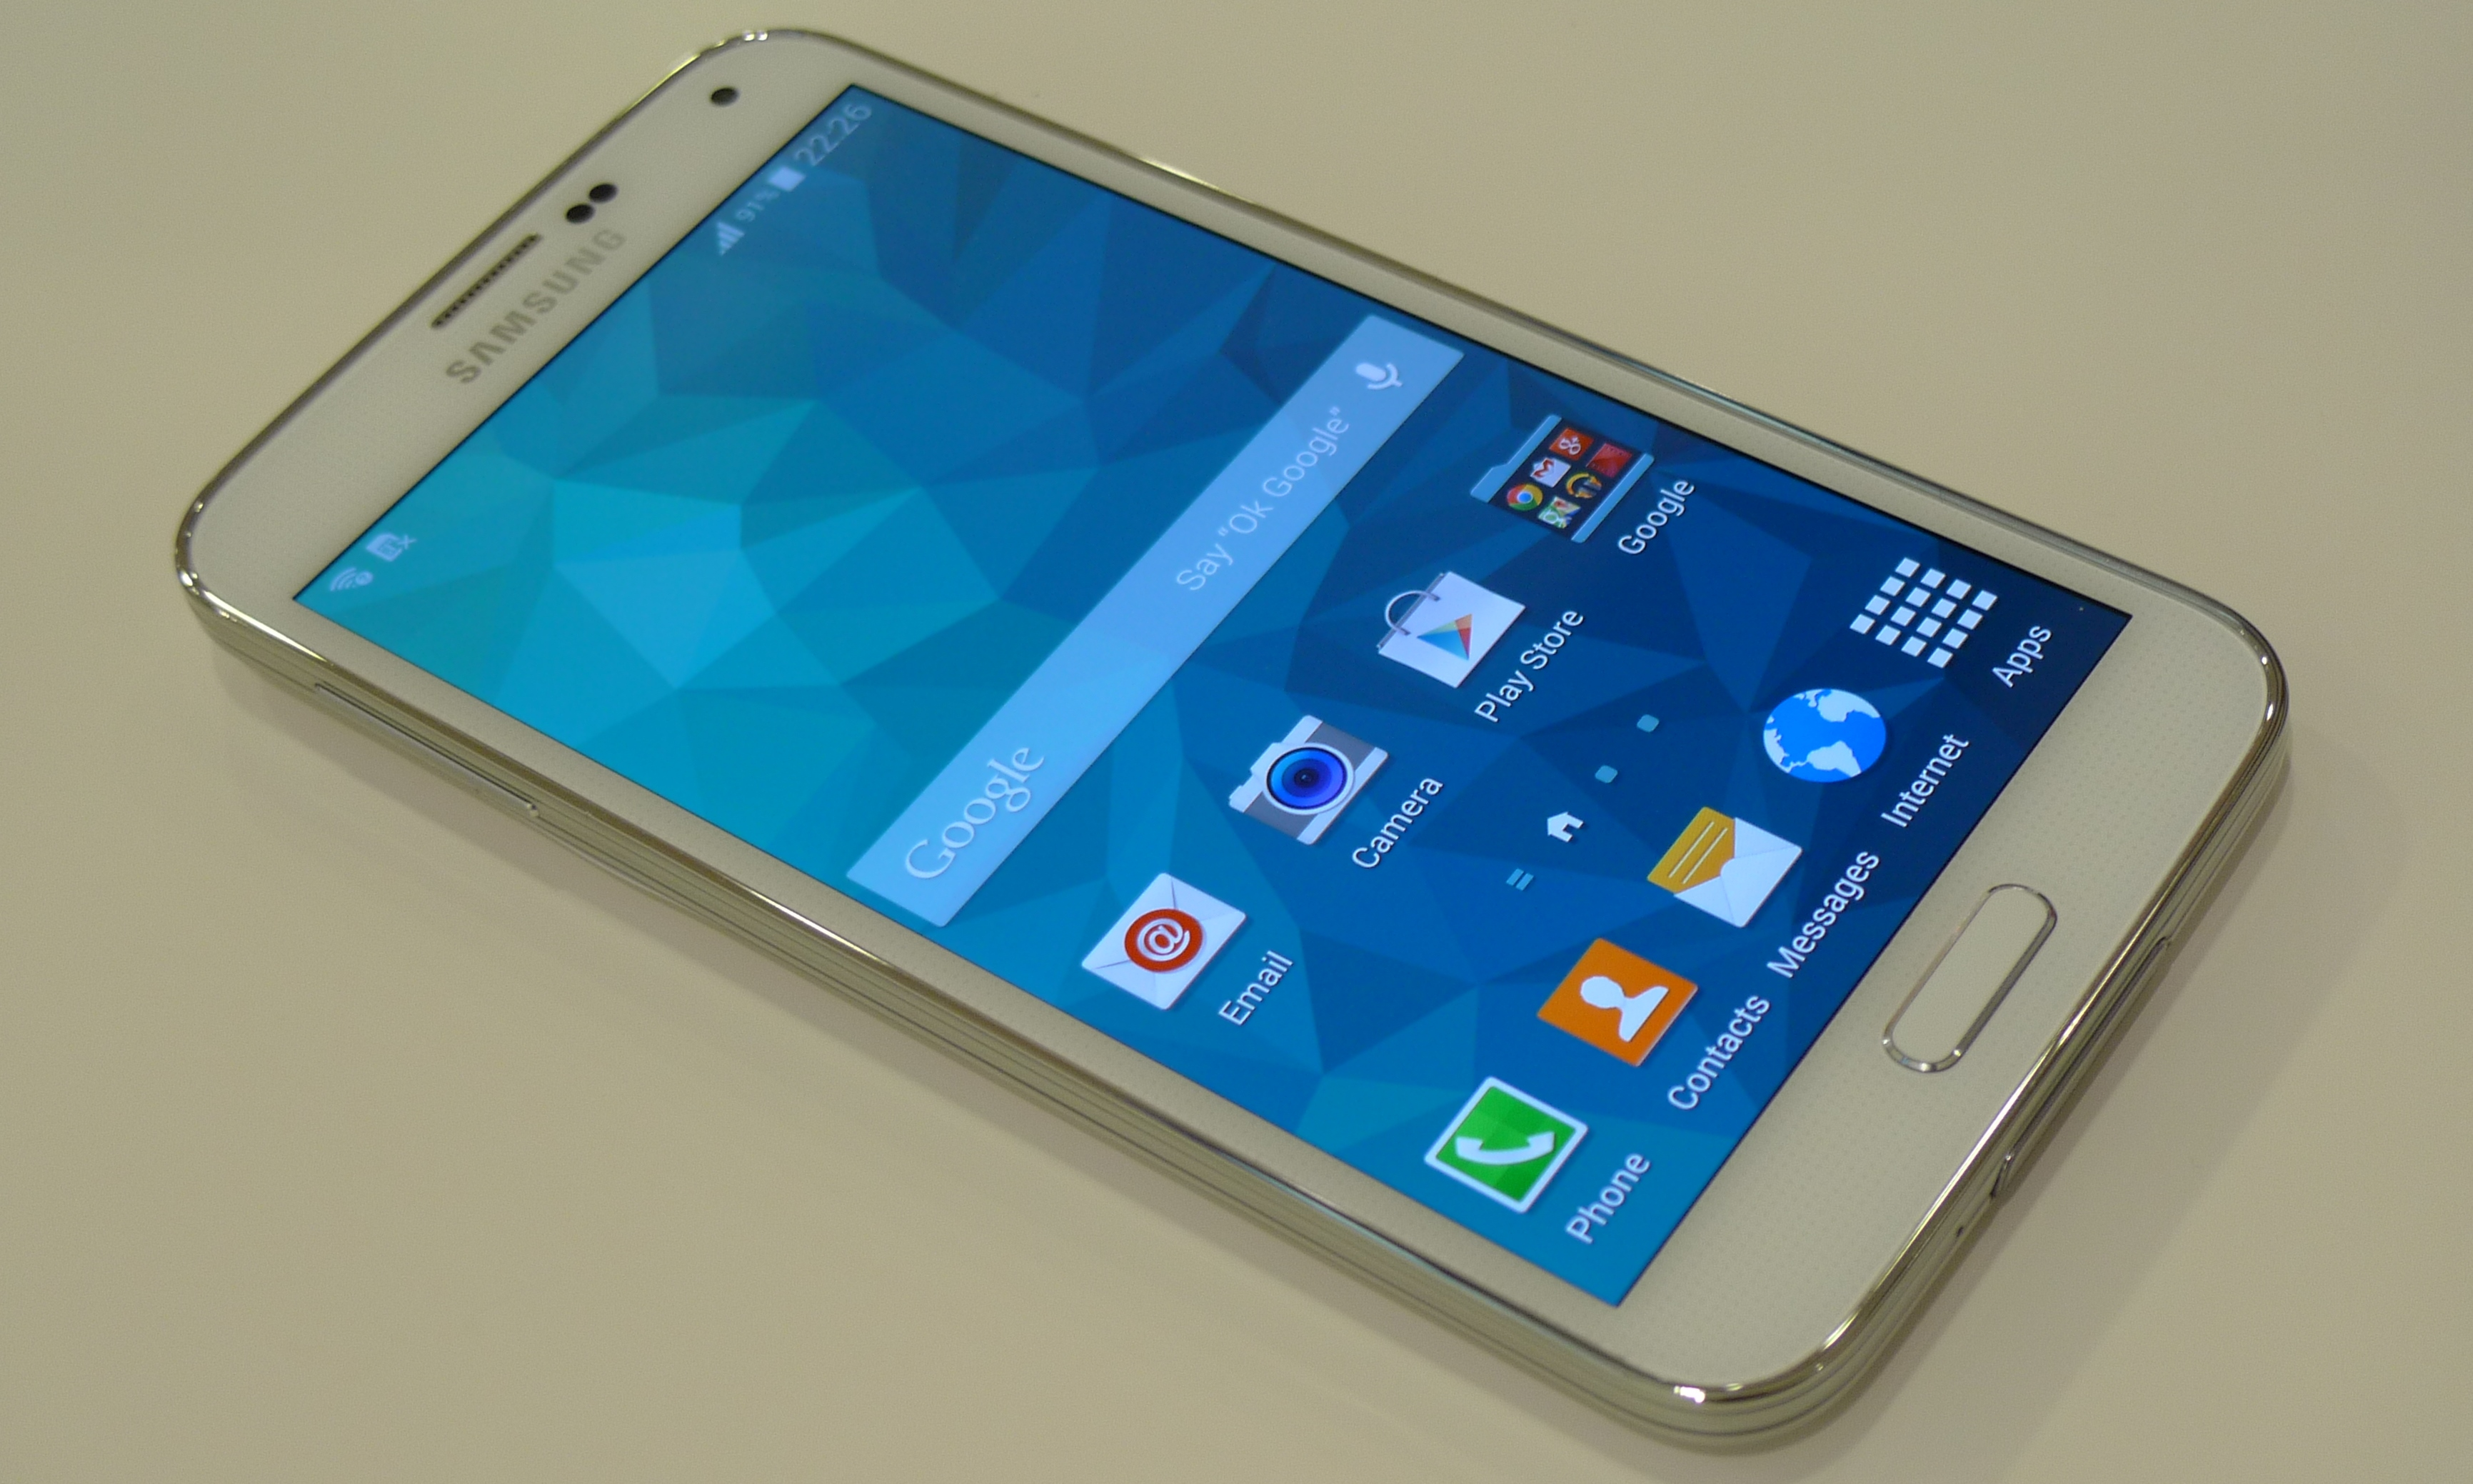 Samsung Galaxy S5 interfaccia